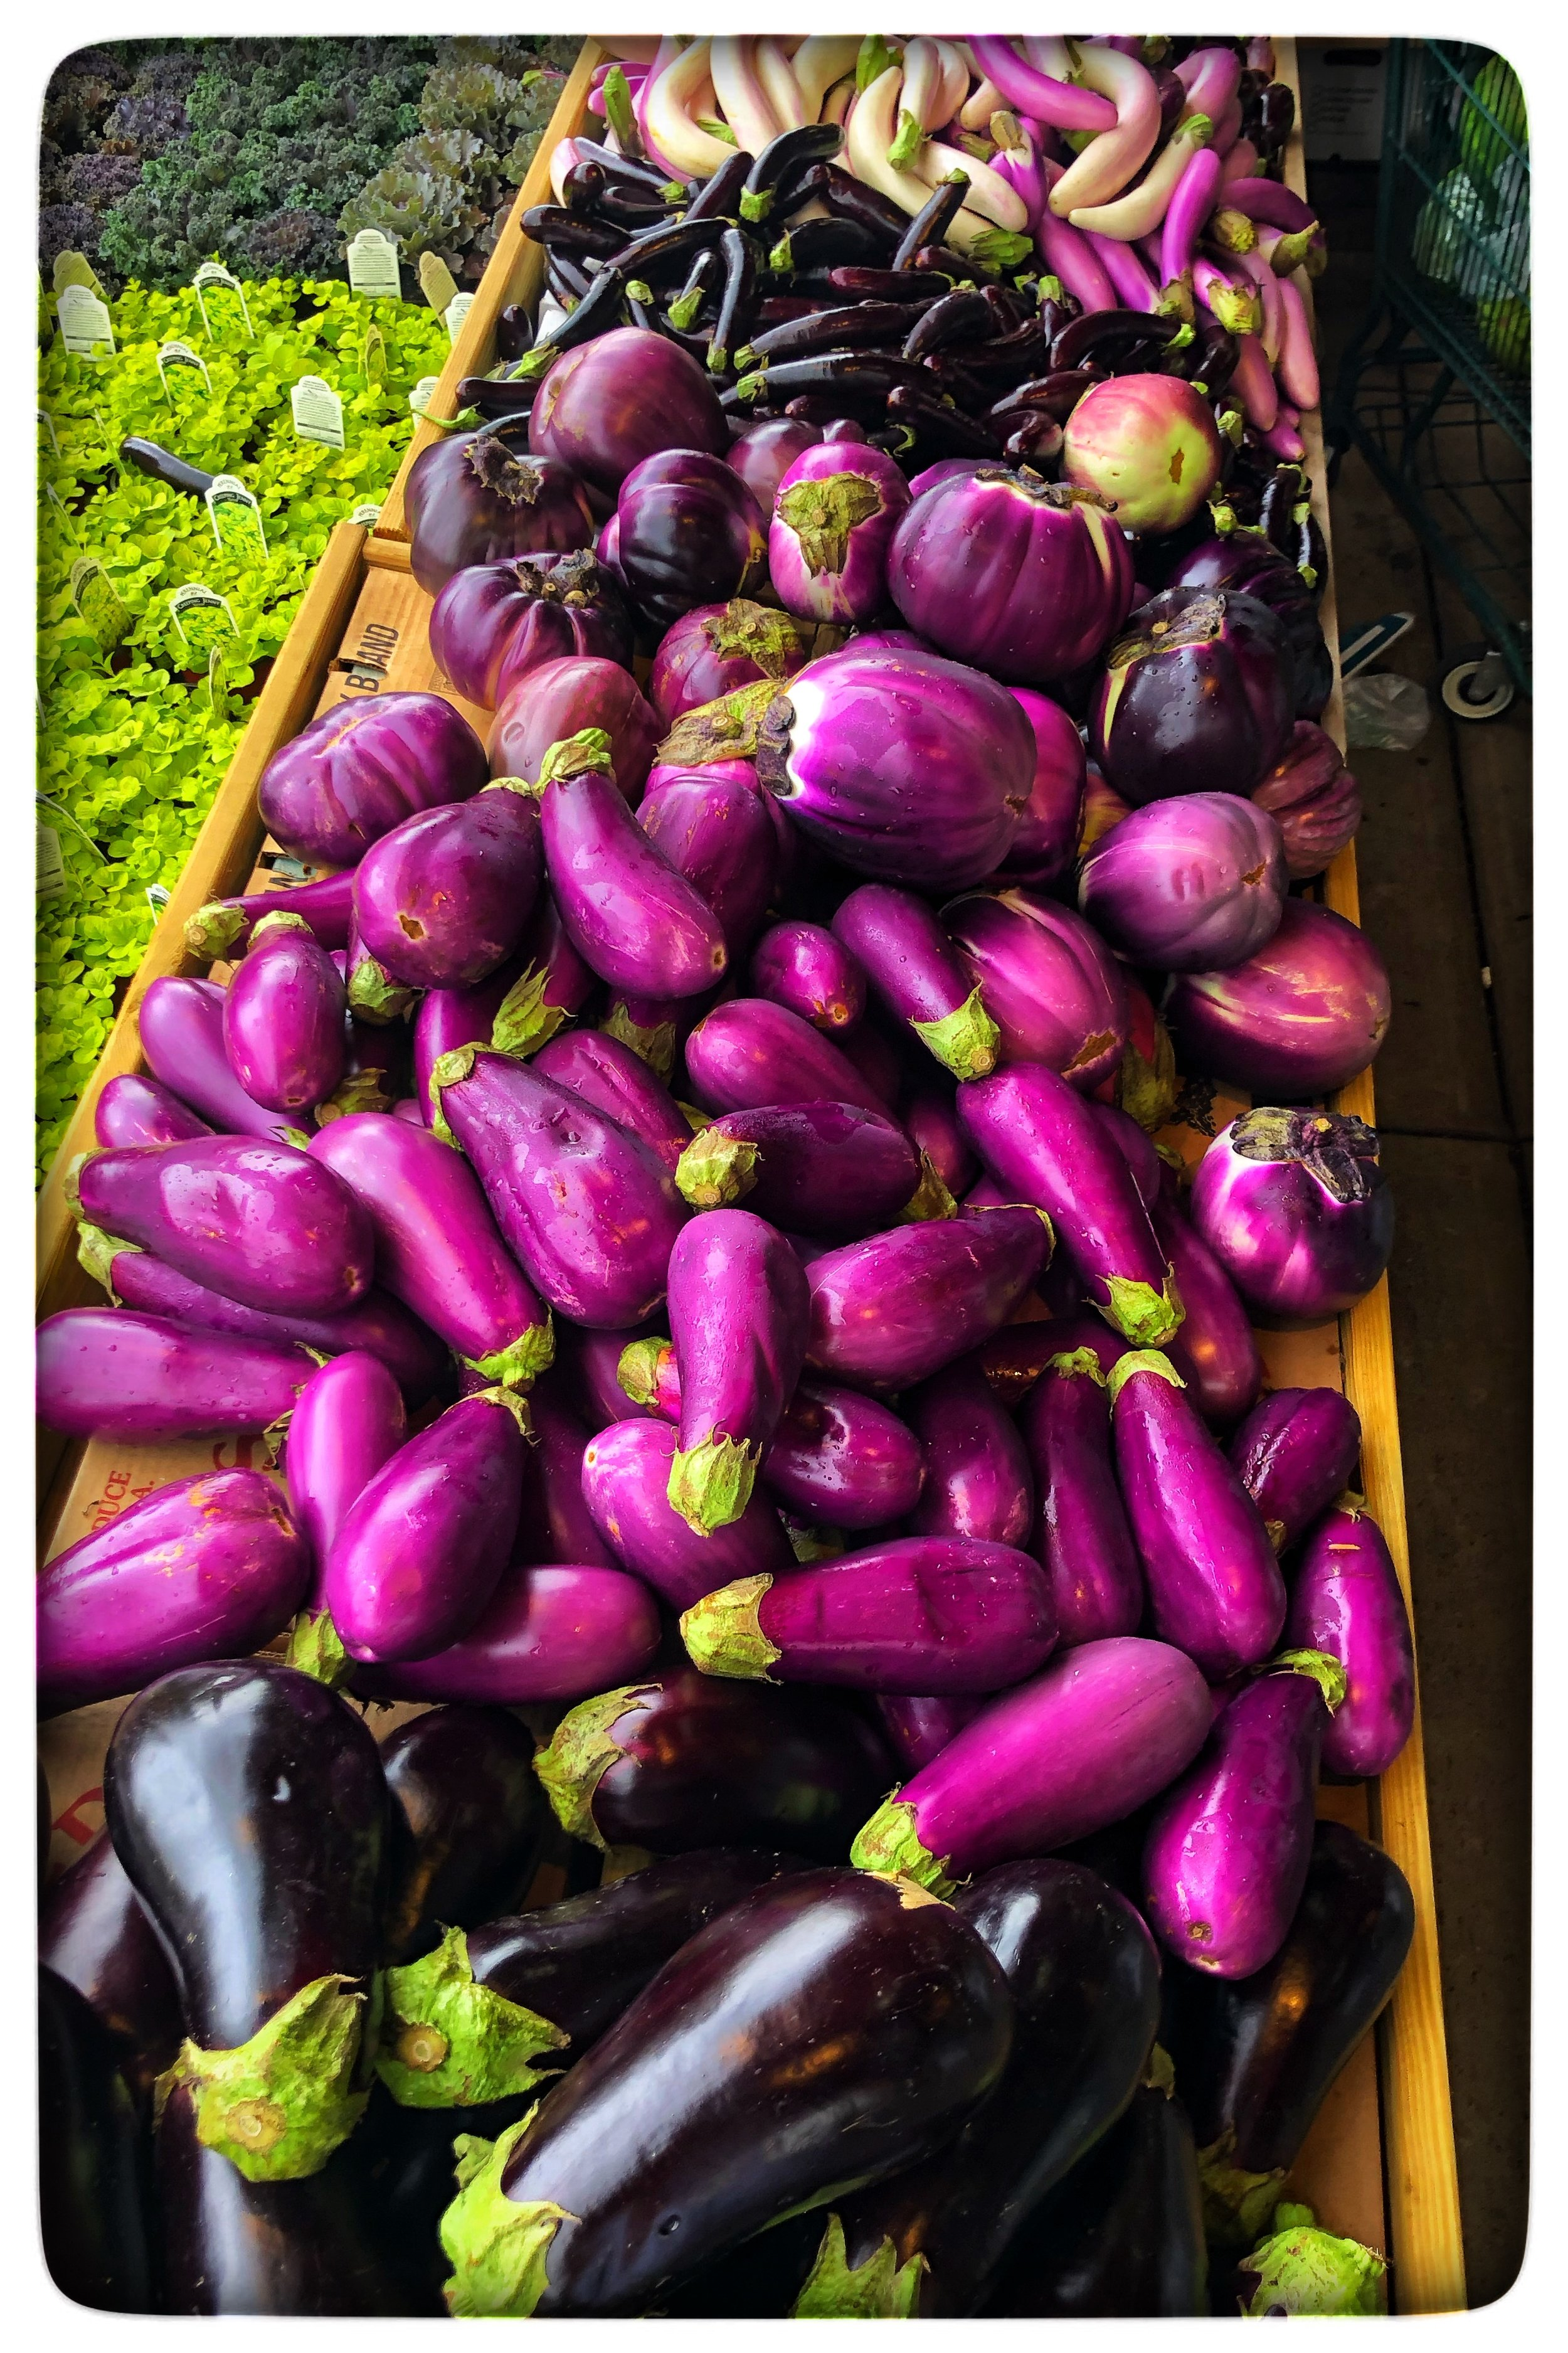 Locally grown eggplants in a variety of colors, flavors and textures!